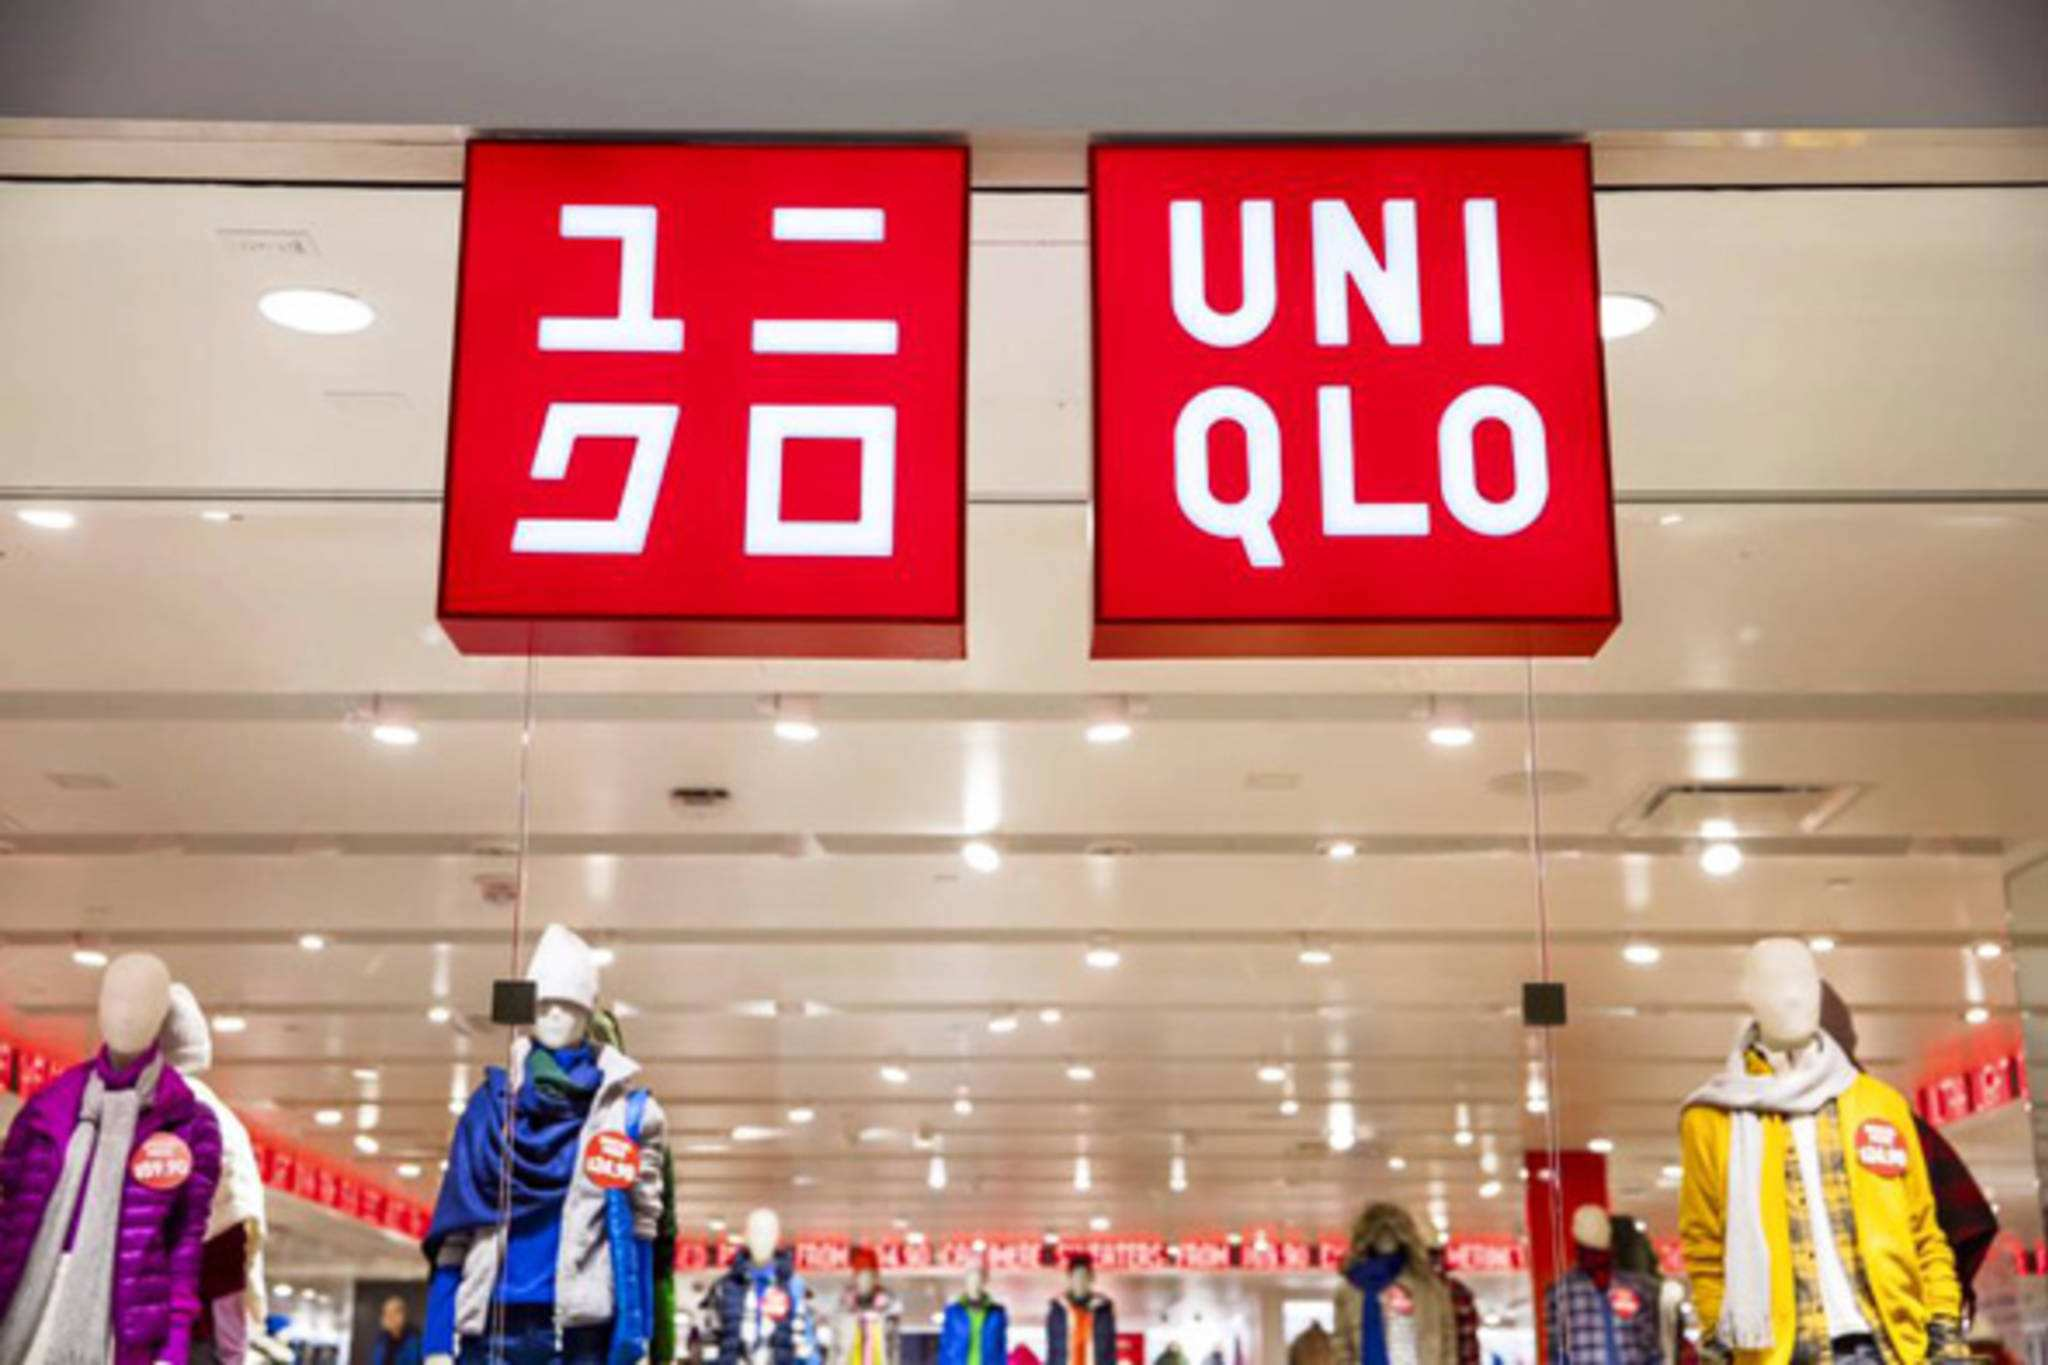 UNIQLO announced the introduction of RFID tags in 3000 stores worldwide during the year